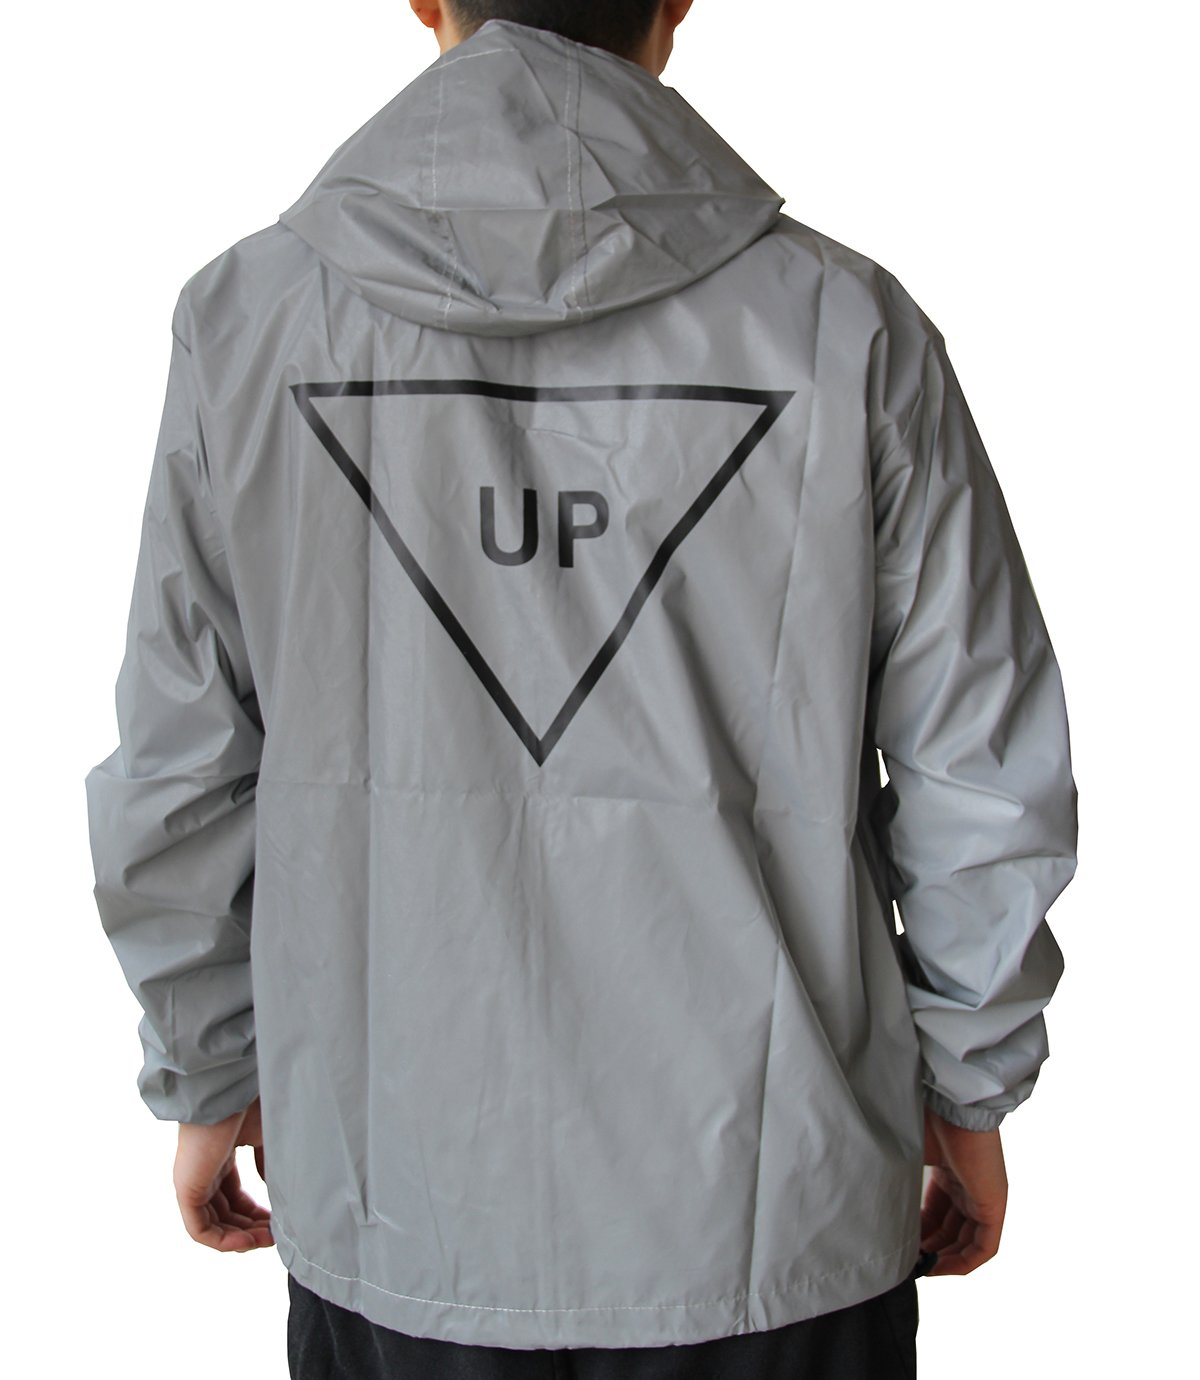 fangfei 3M Reflective Coat Hooded Windbreaker Fashion Runing Jacket(UP)